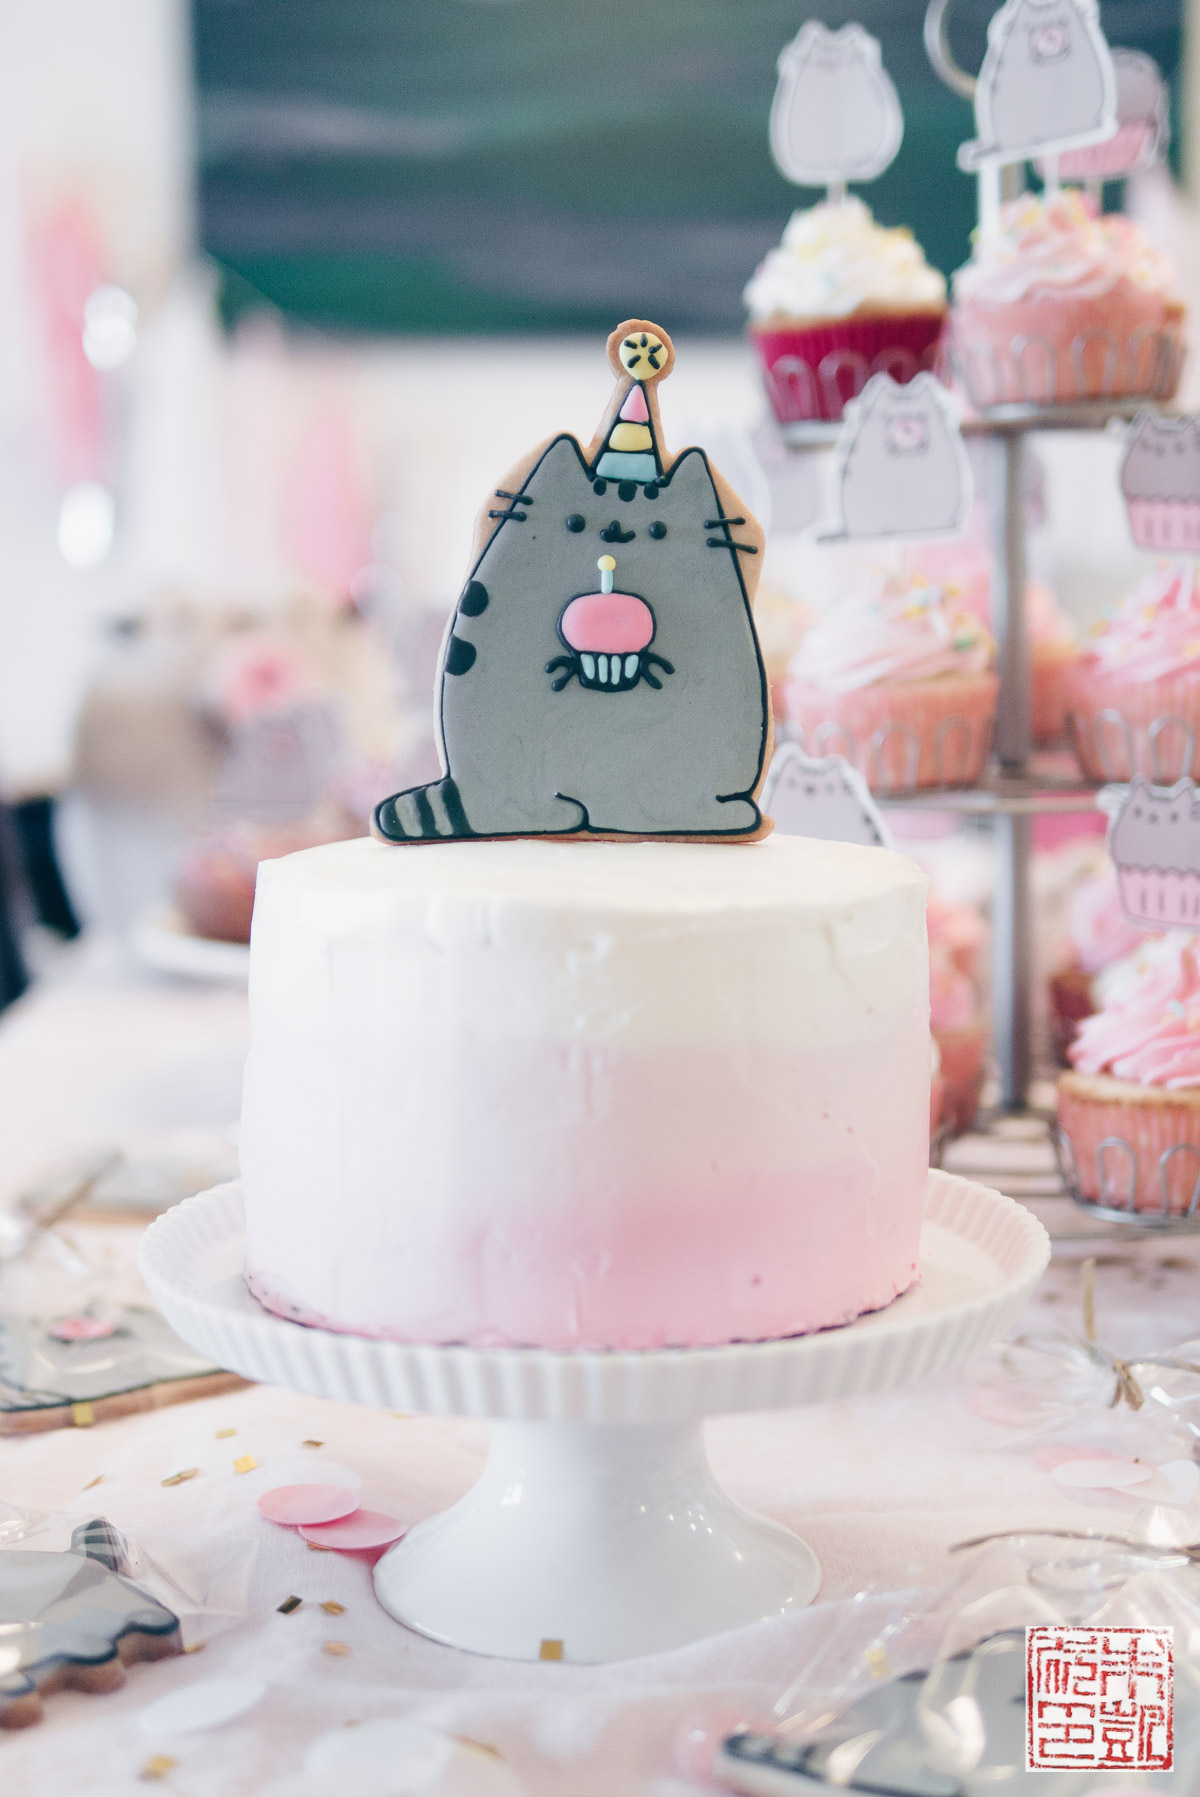 Swell Pusheen Birthday Party For A 4 Year Old Dessert First Personalised Birthday Cards Veneteletsinfo